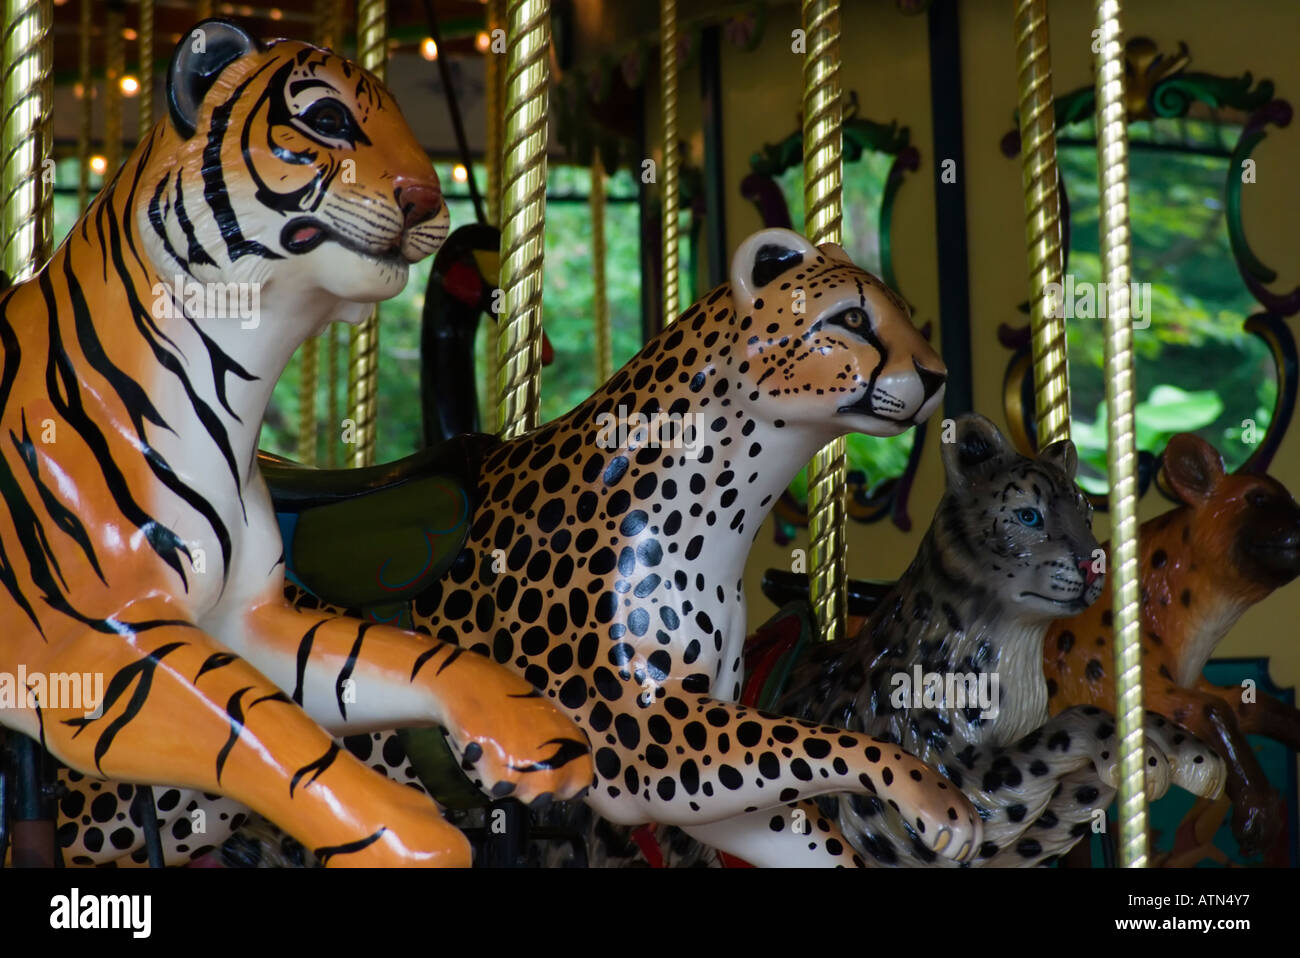 a tiger cheetah and snow leopard figures on a carousel in the st